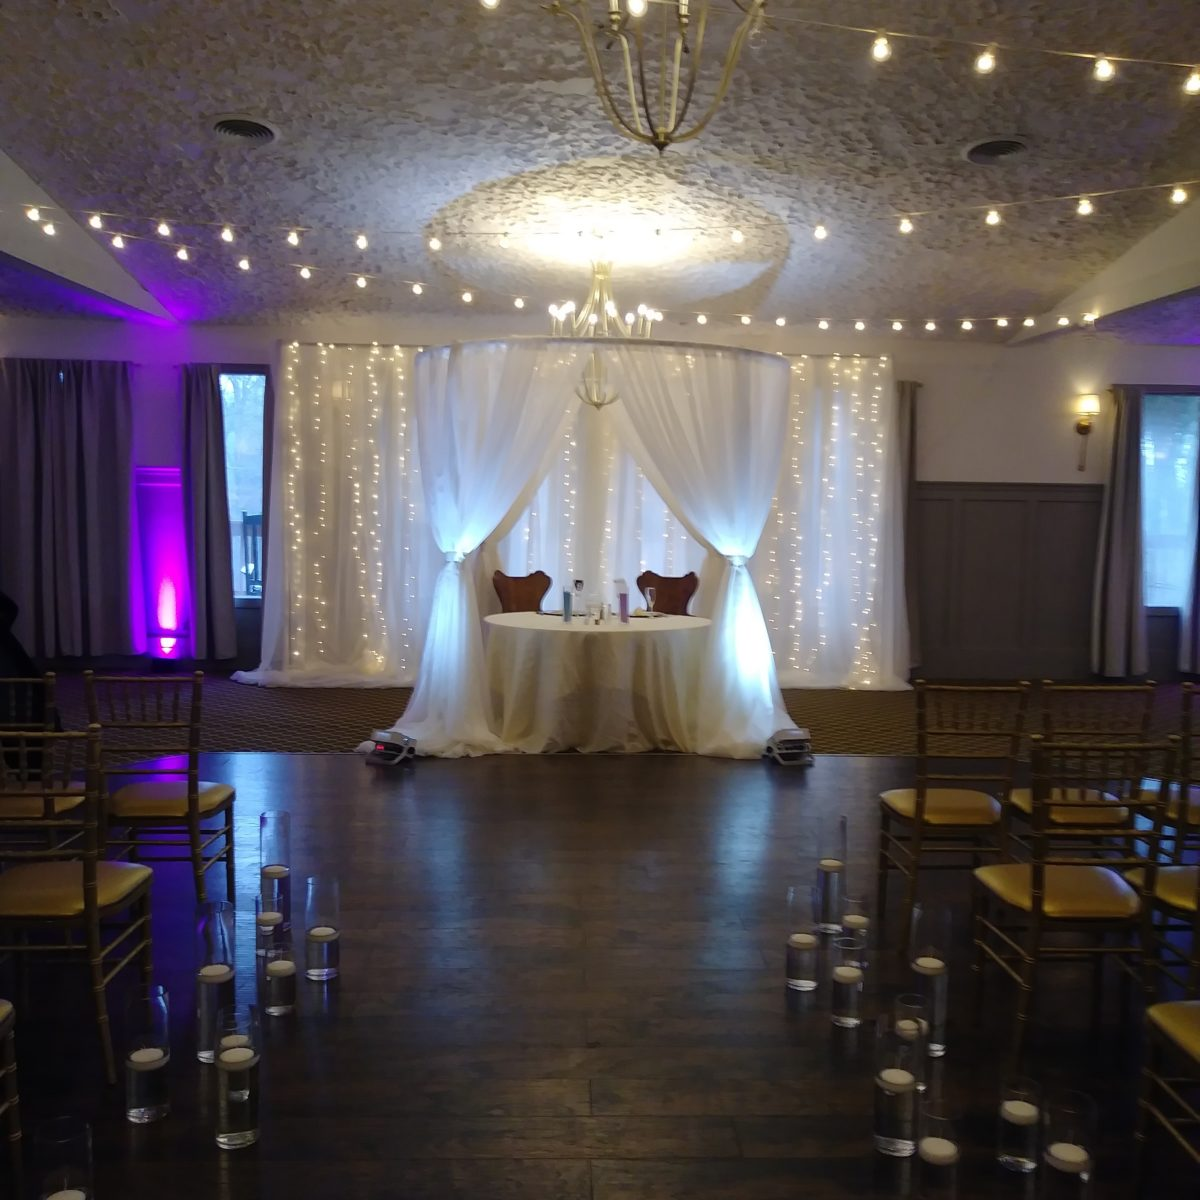 wedding pipe and drape event decor at landoll castle in columbus ohio